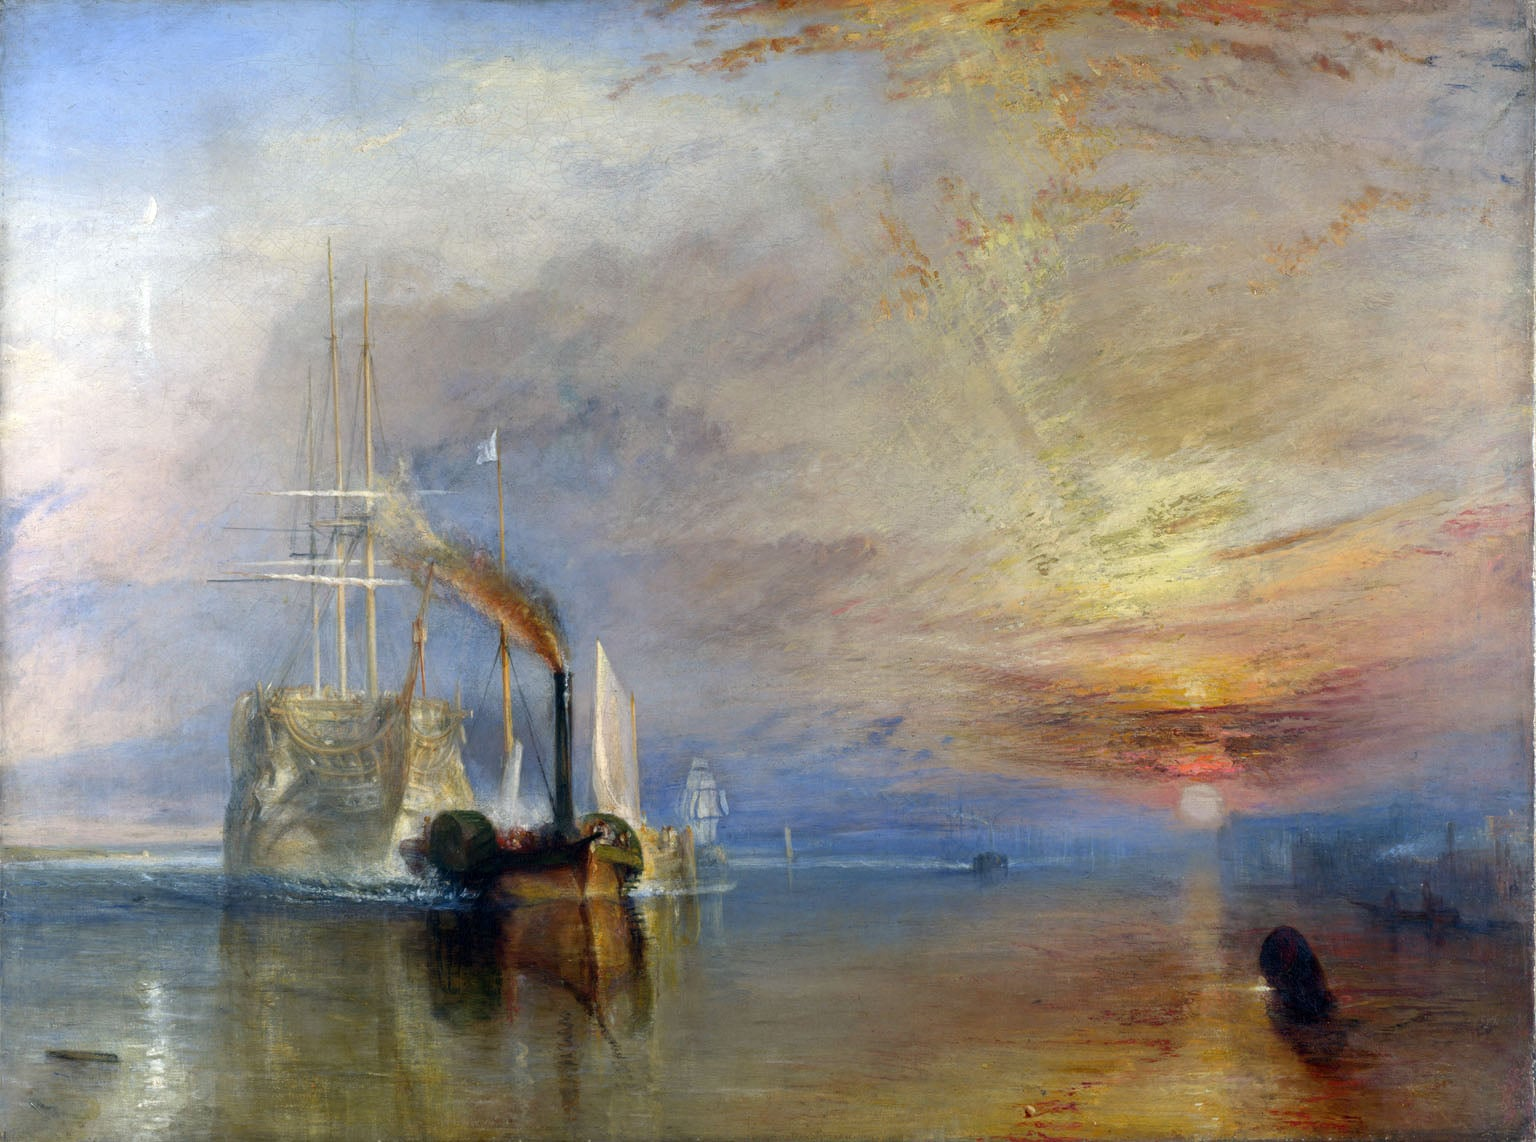 5. JMW Turner, The Fighting Temeraire, 1839 - National Gallery